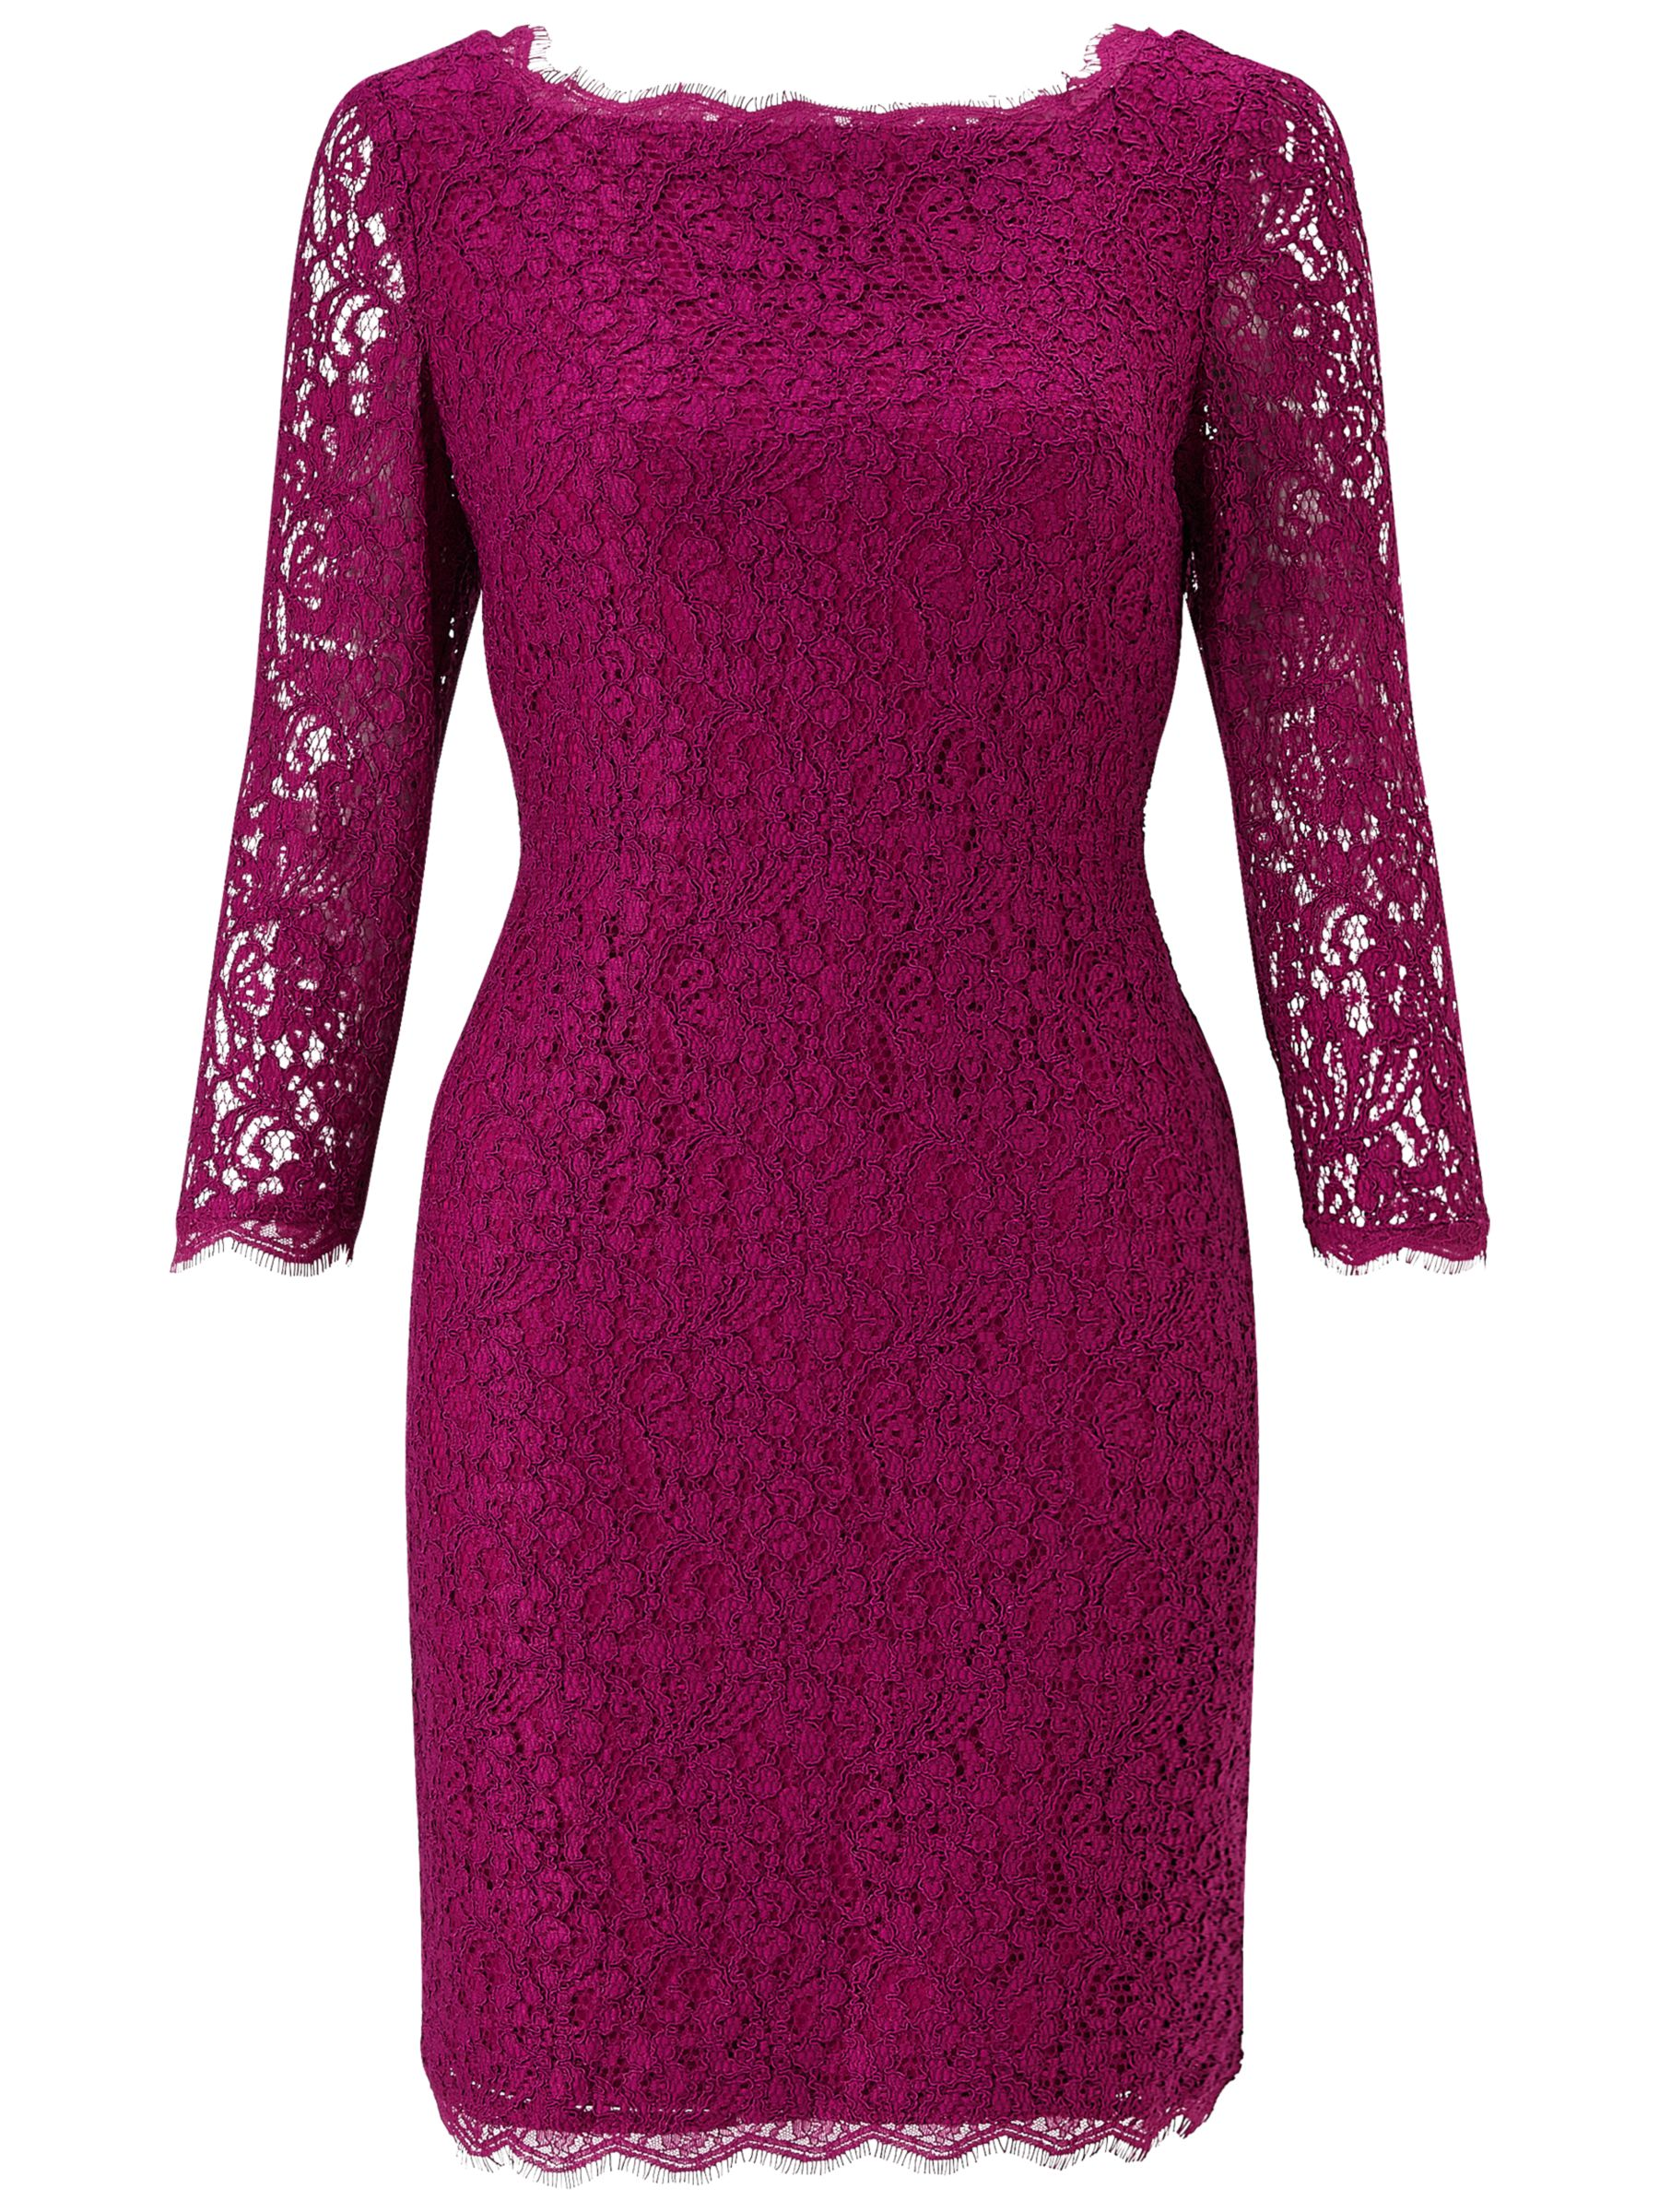 Adrianna Papell Adrianna Papell Petite 3/4 Length Sleeve Lace Dress, Crushed Berry